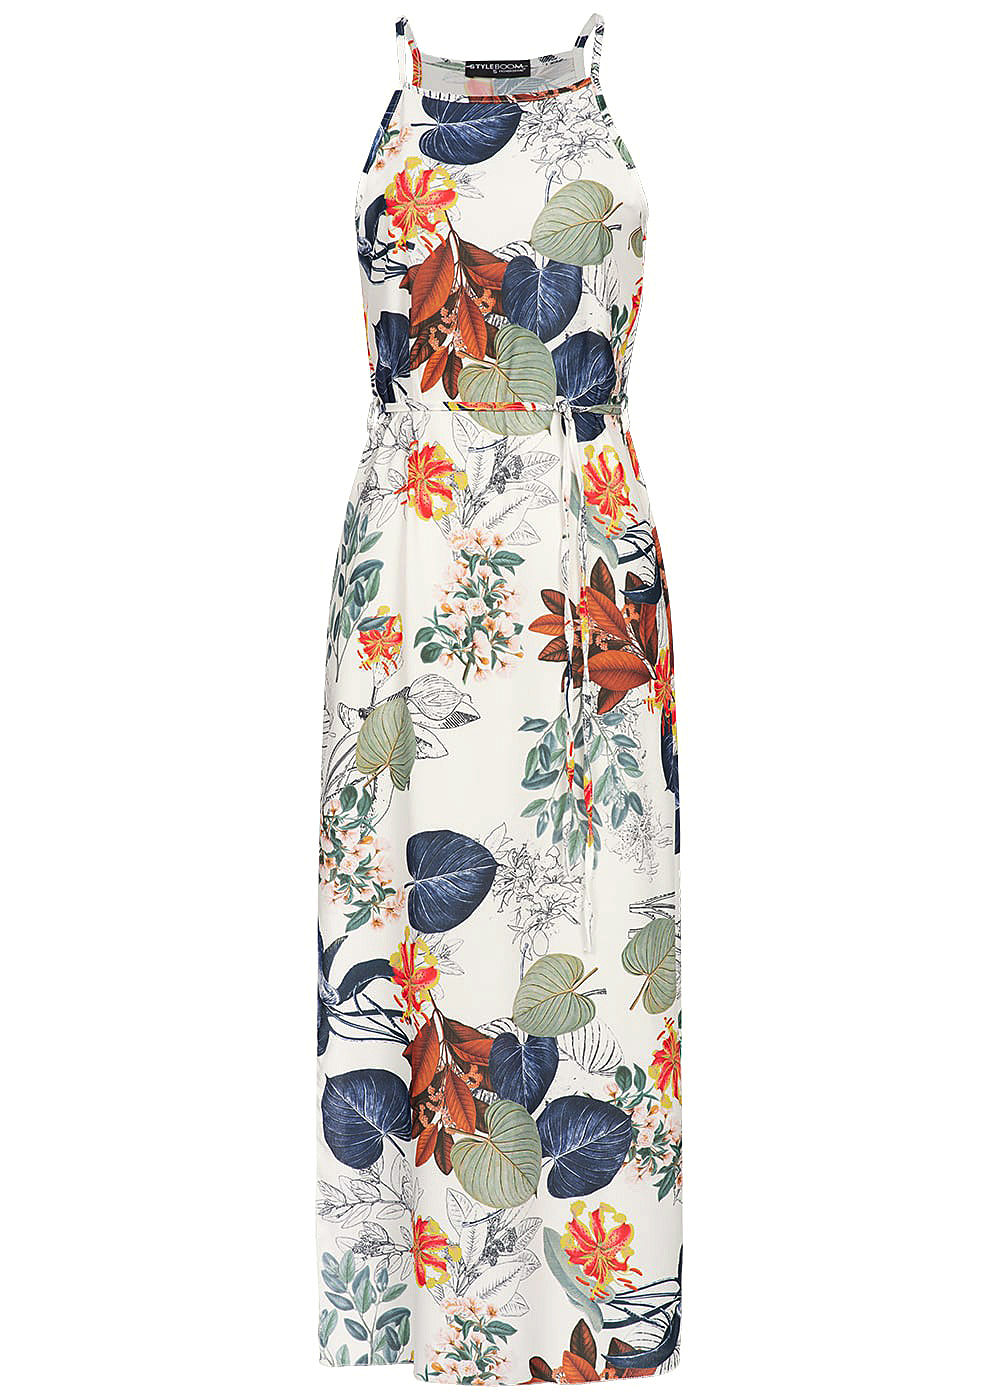 Styleboom Fashion Damen Maxi Dress Tropical Print weiss grün - Art.-Nr.: 19036262